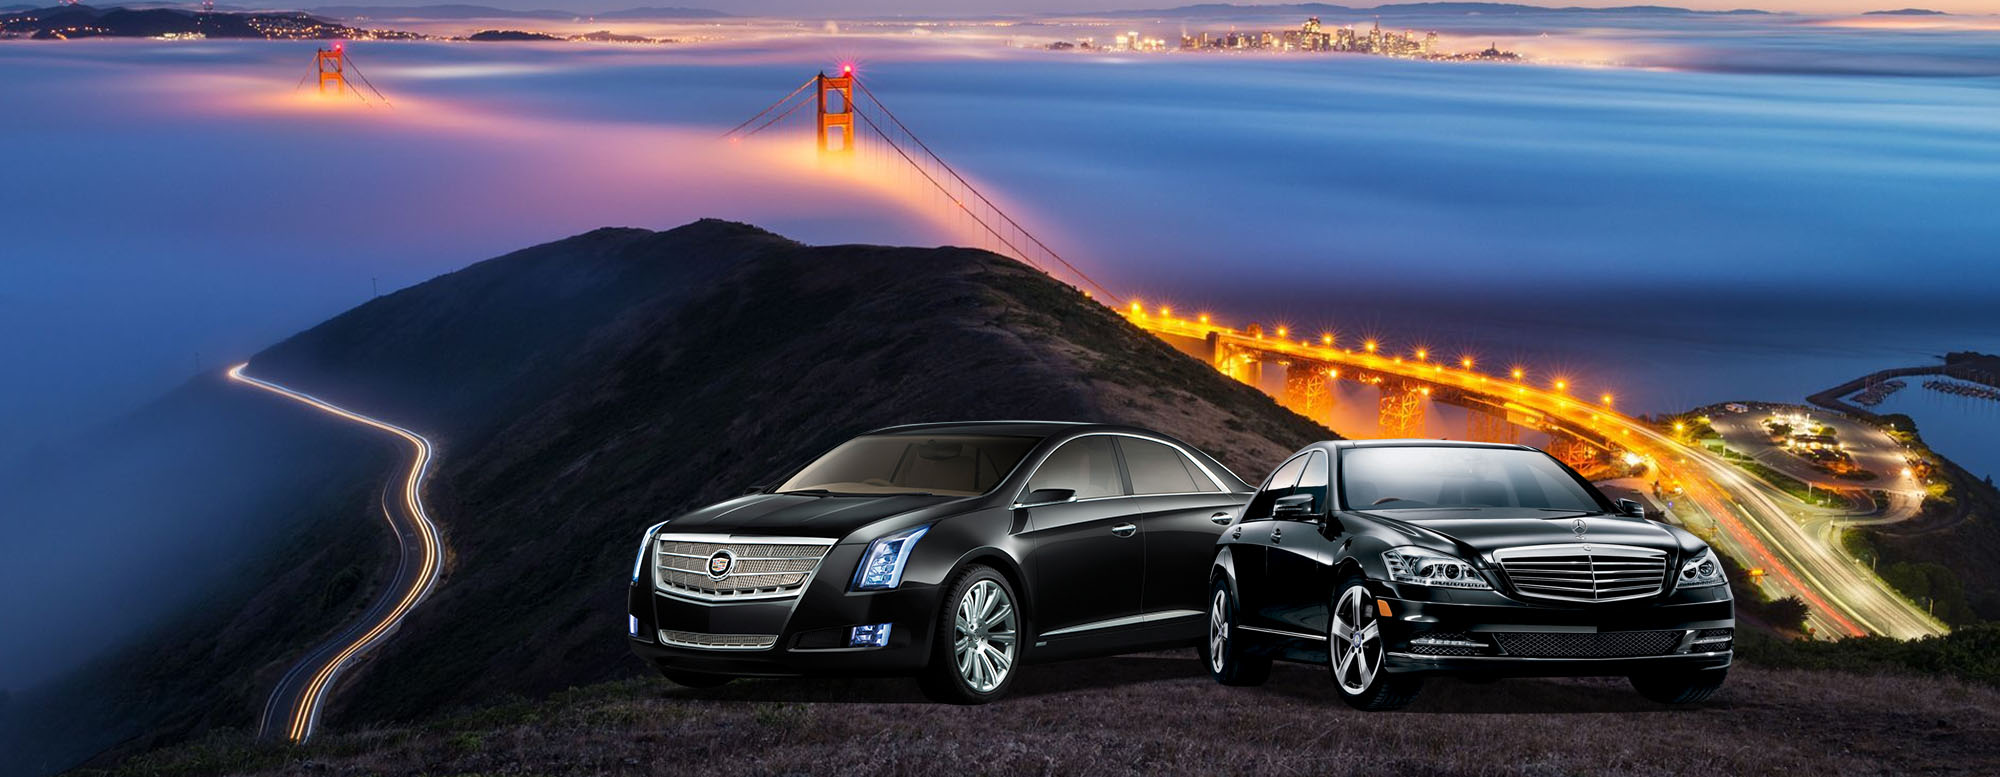 Bay Area Limousine San Francisco Car Service Airport